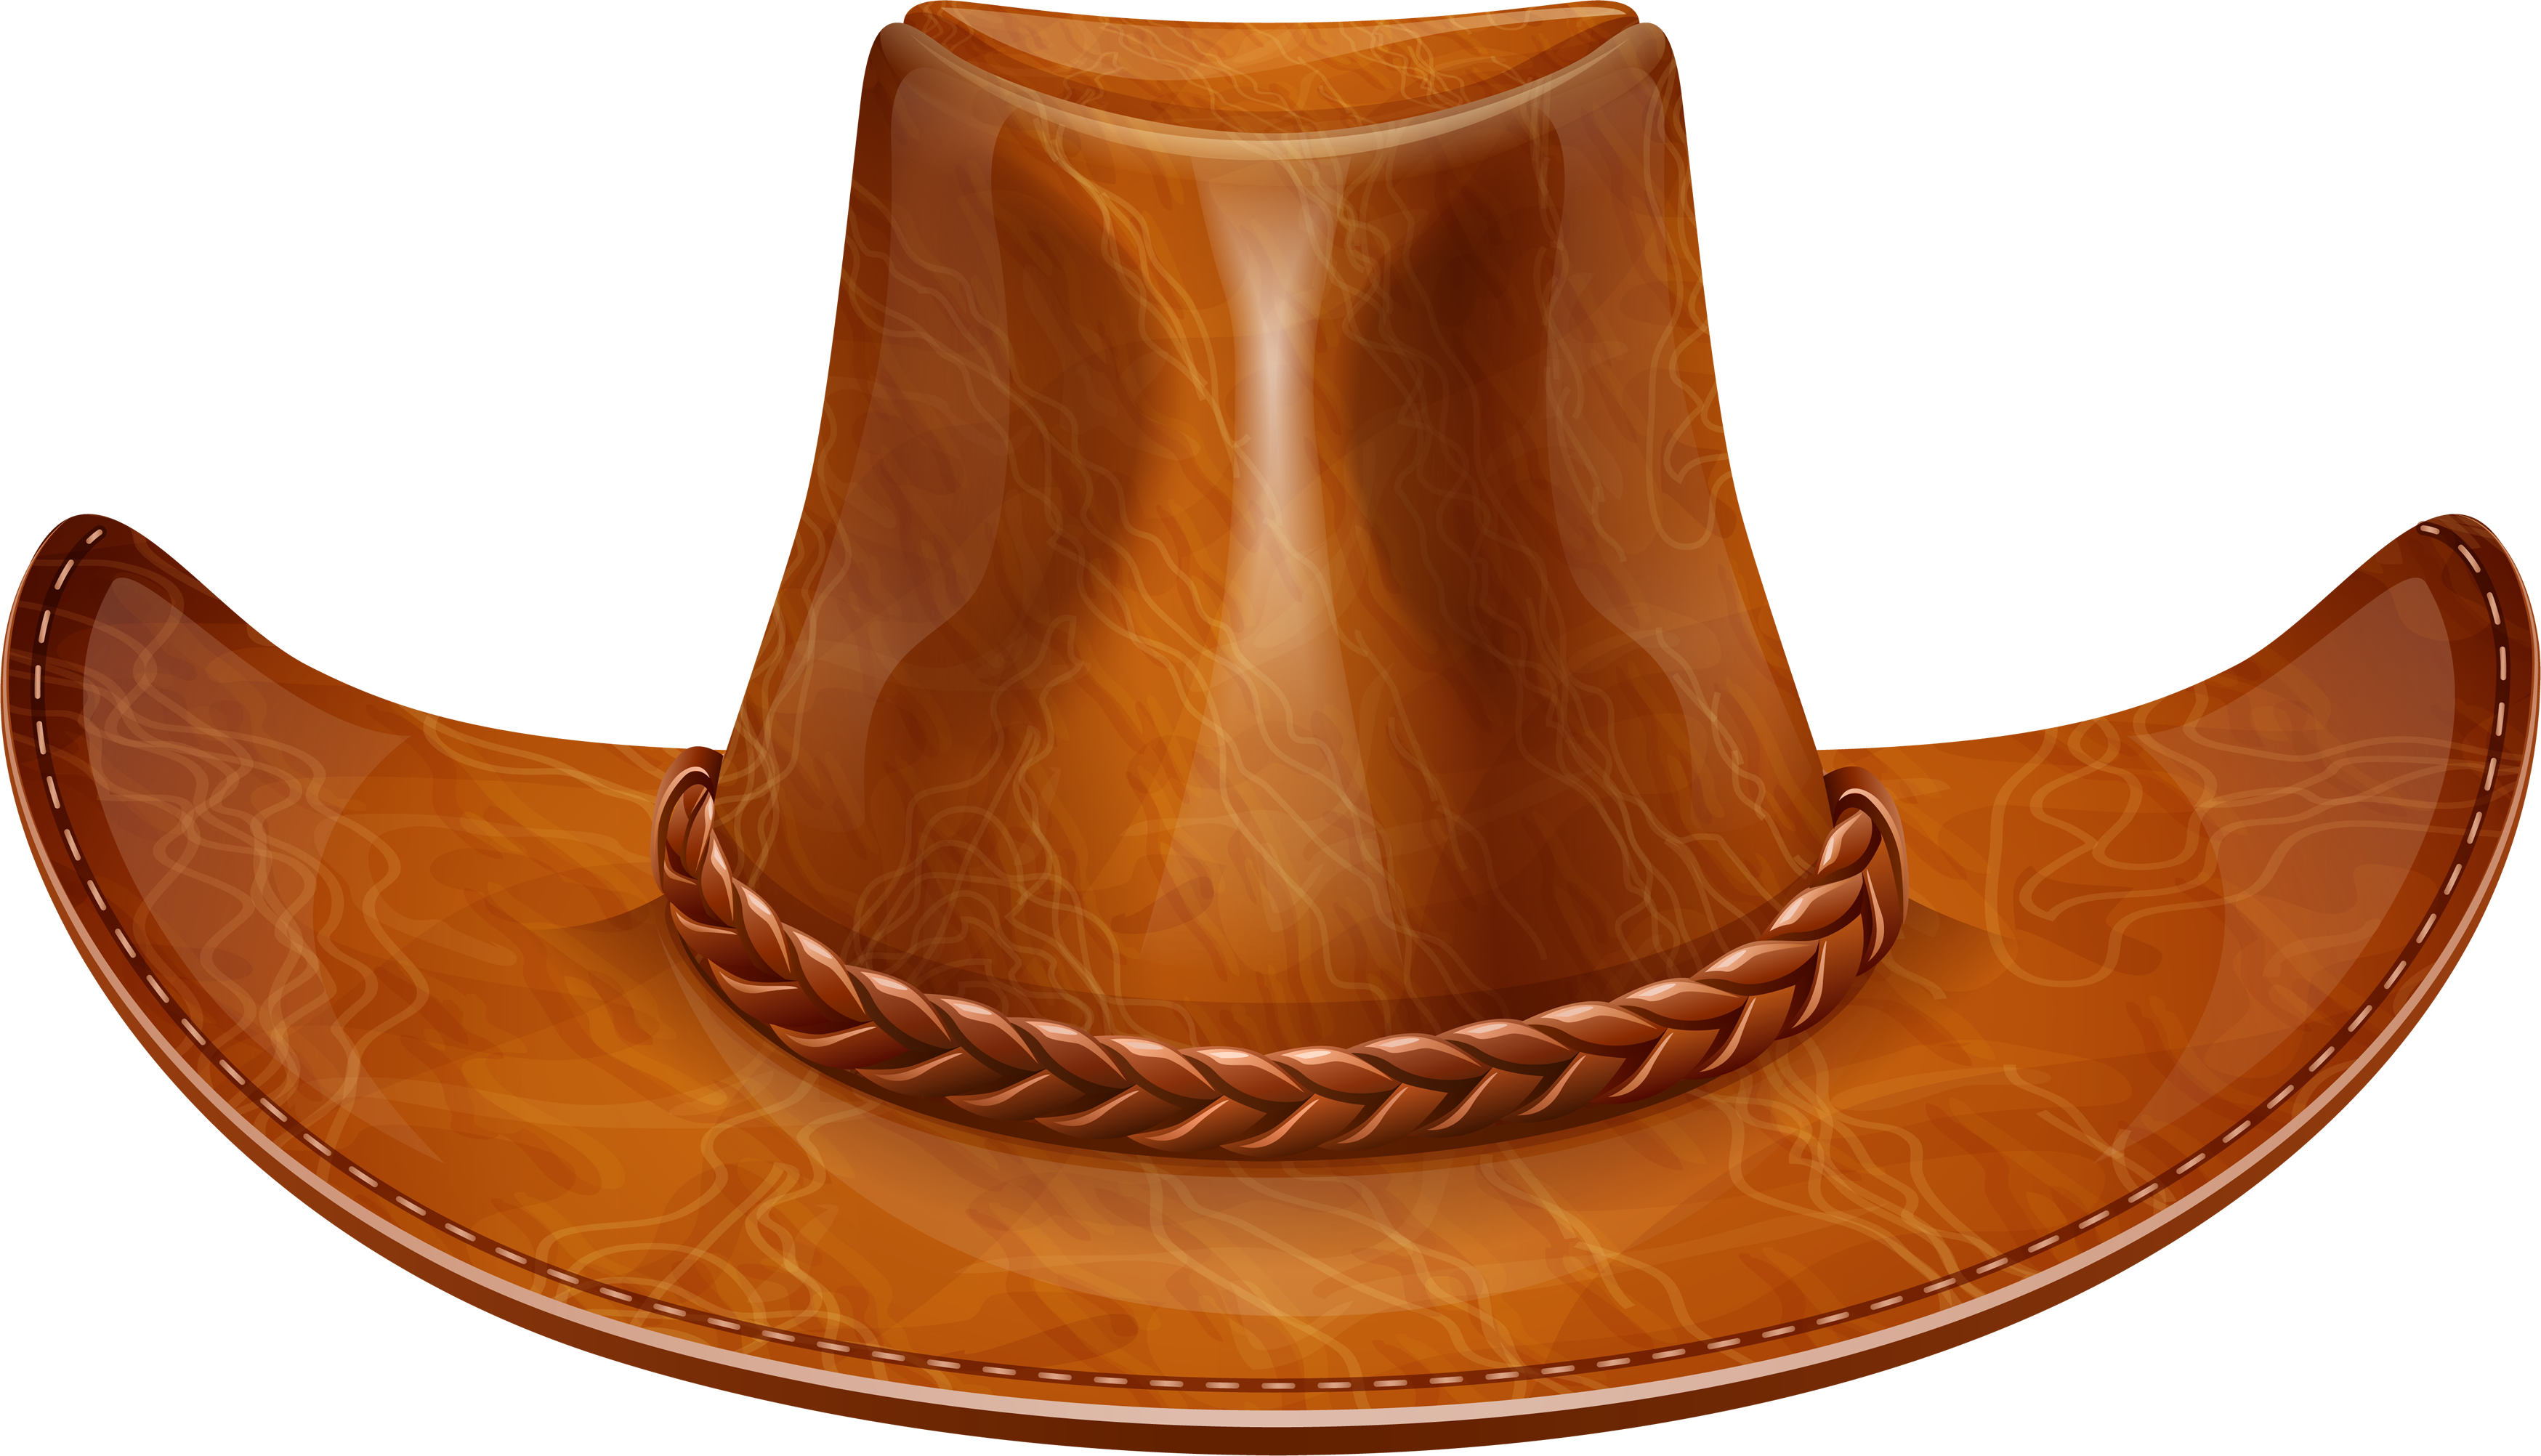 image free stock Free clipart western theme. Hat png images download.